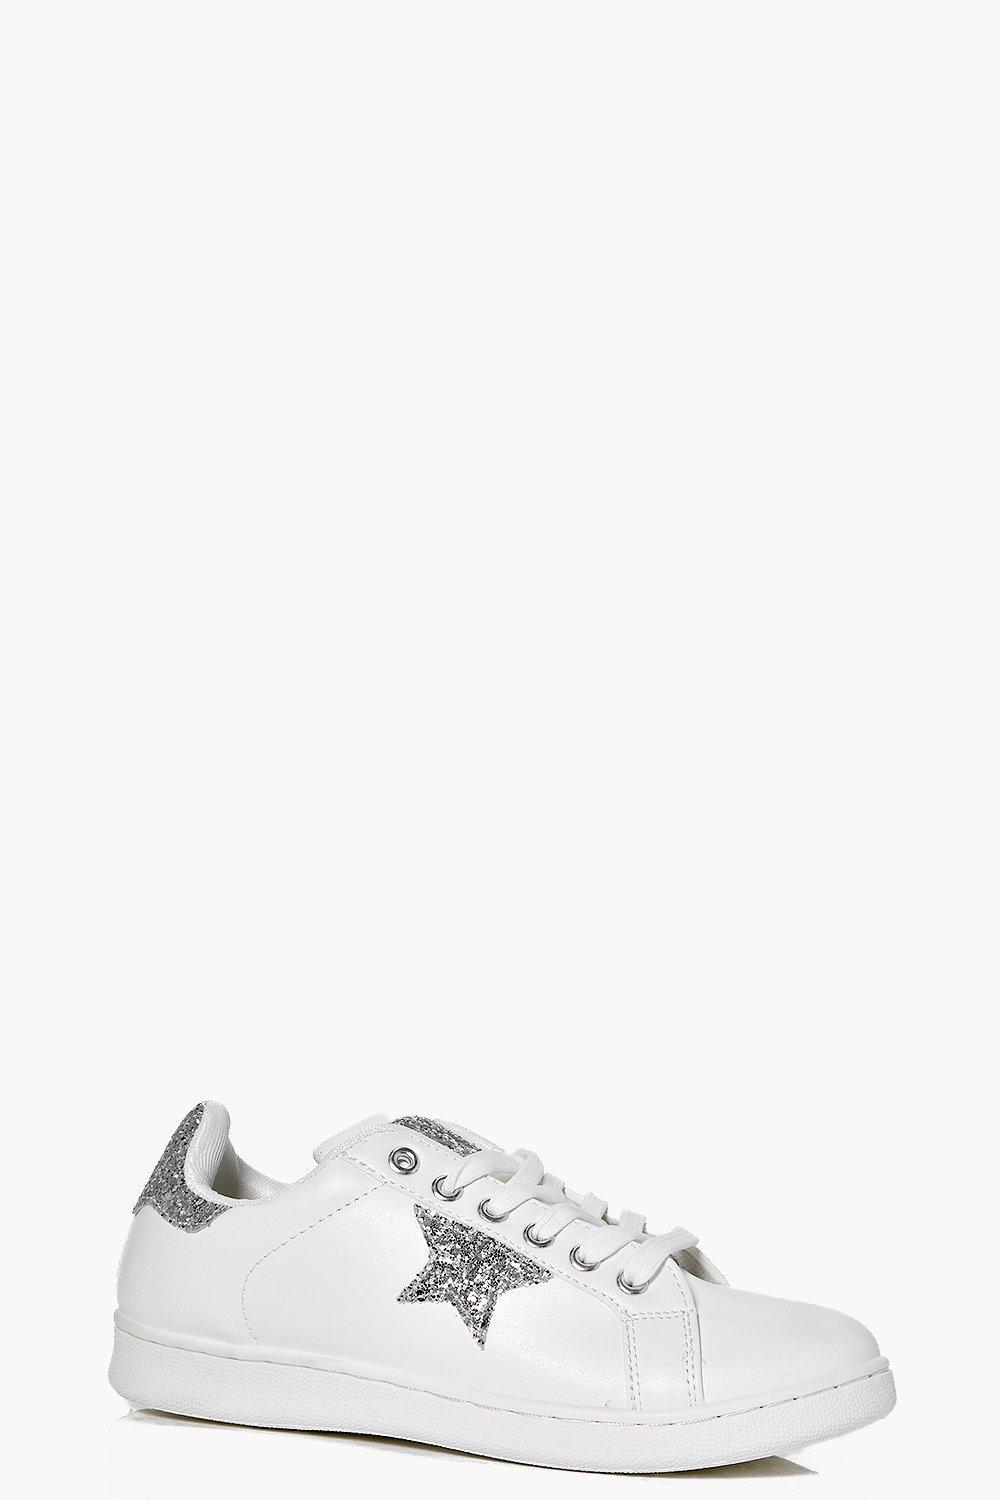 Star Detail Lace Up Trainer Silver - secondary colour: white; predominant colour: silver; occasions: casual; material: faux leather; heel height: flat; toe: round toe; style: trainers; finish: plain; pattern: patterned/print; season: s/s 2016; wardrobe: highlight